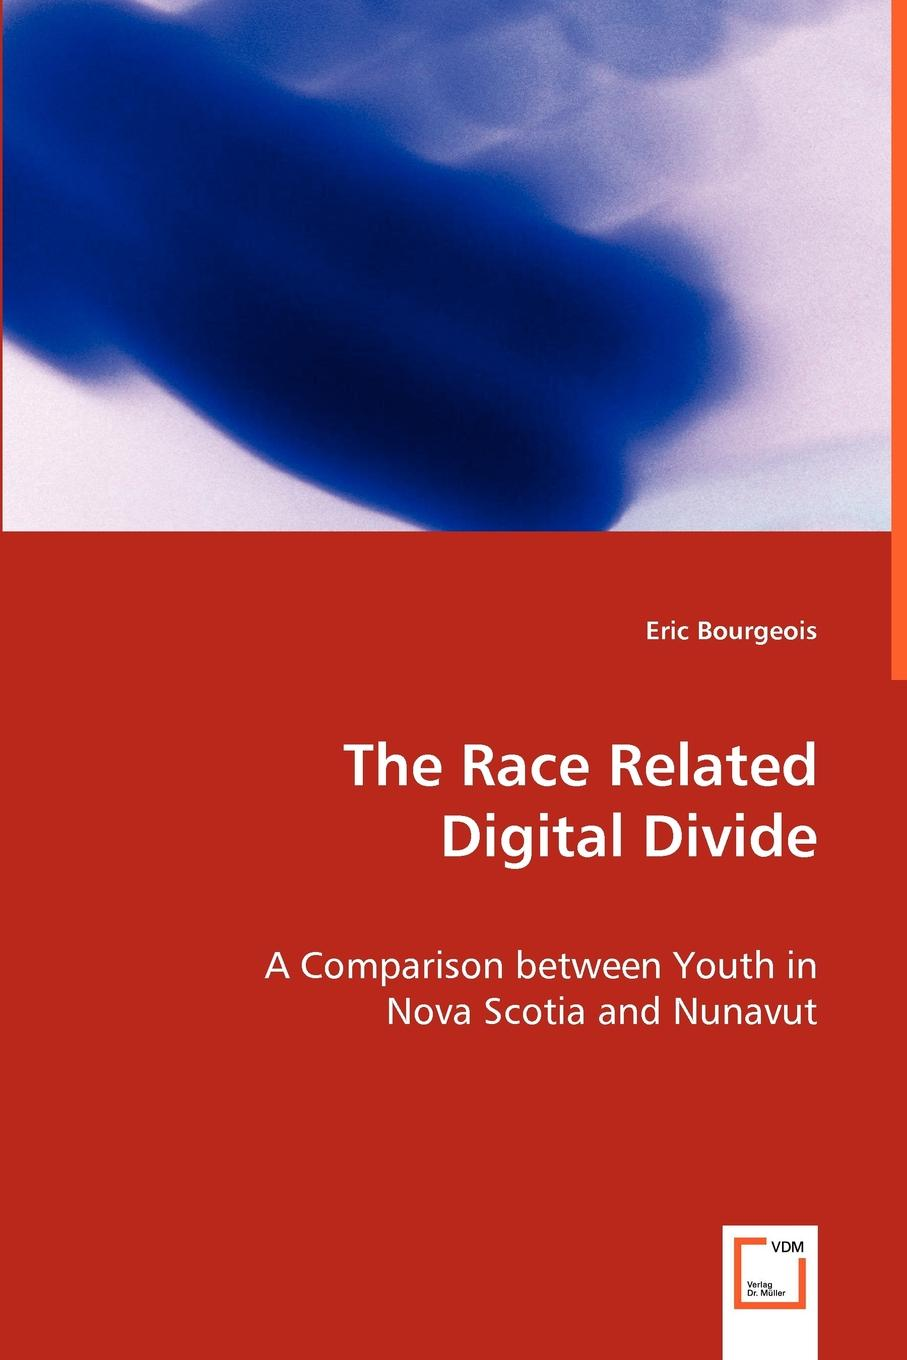 Eric Bourgeois The Race Related Digital Divide - A Comparison between Youth in Nova Scotia and Nunavut the great divide